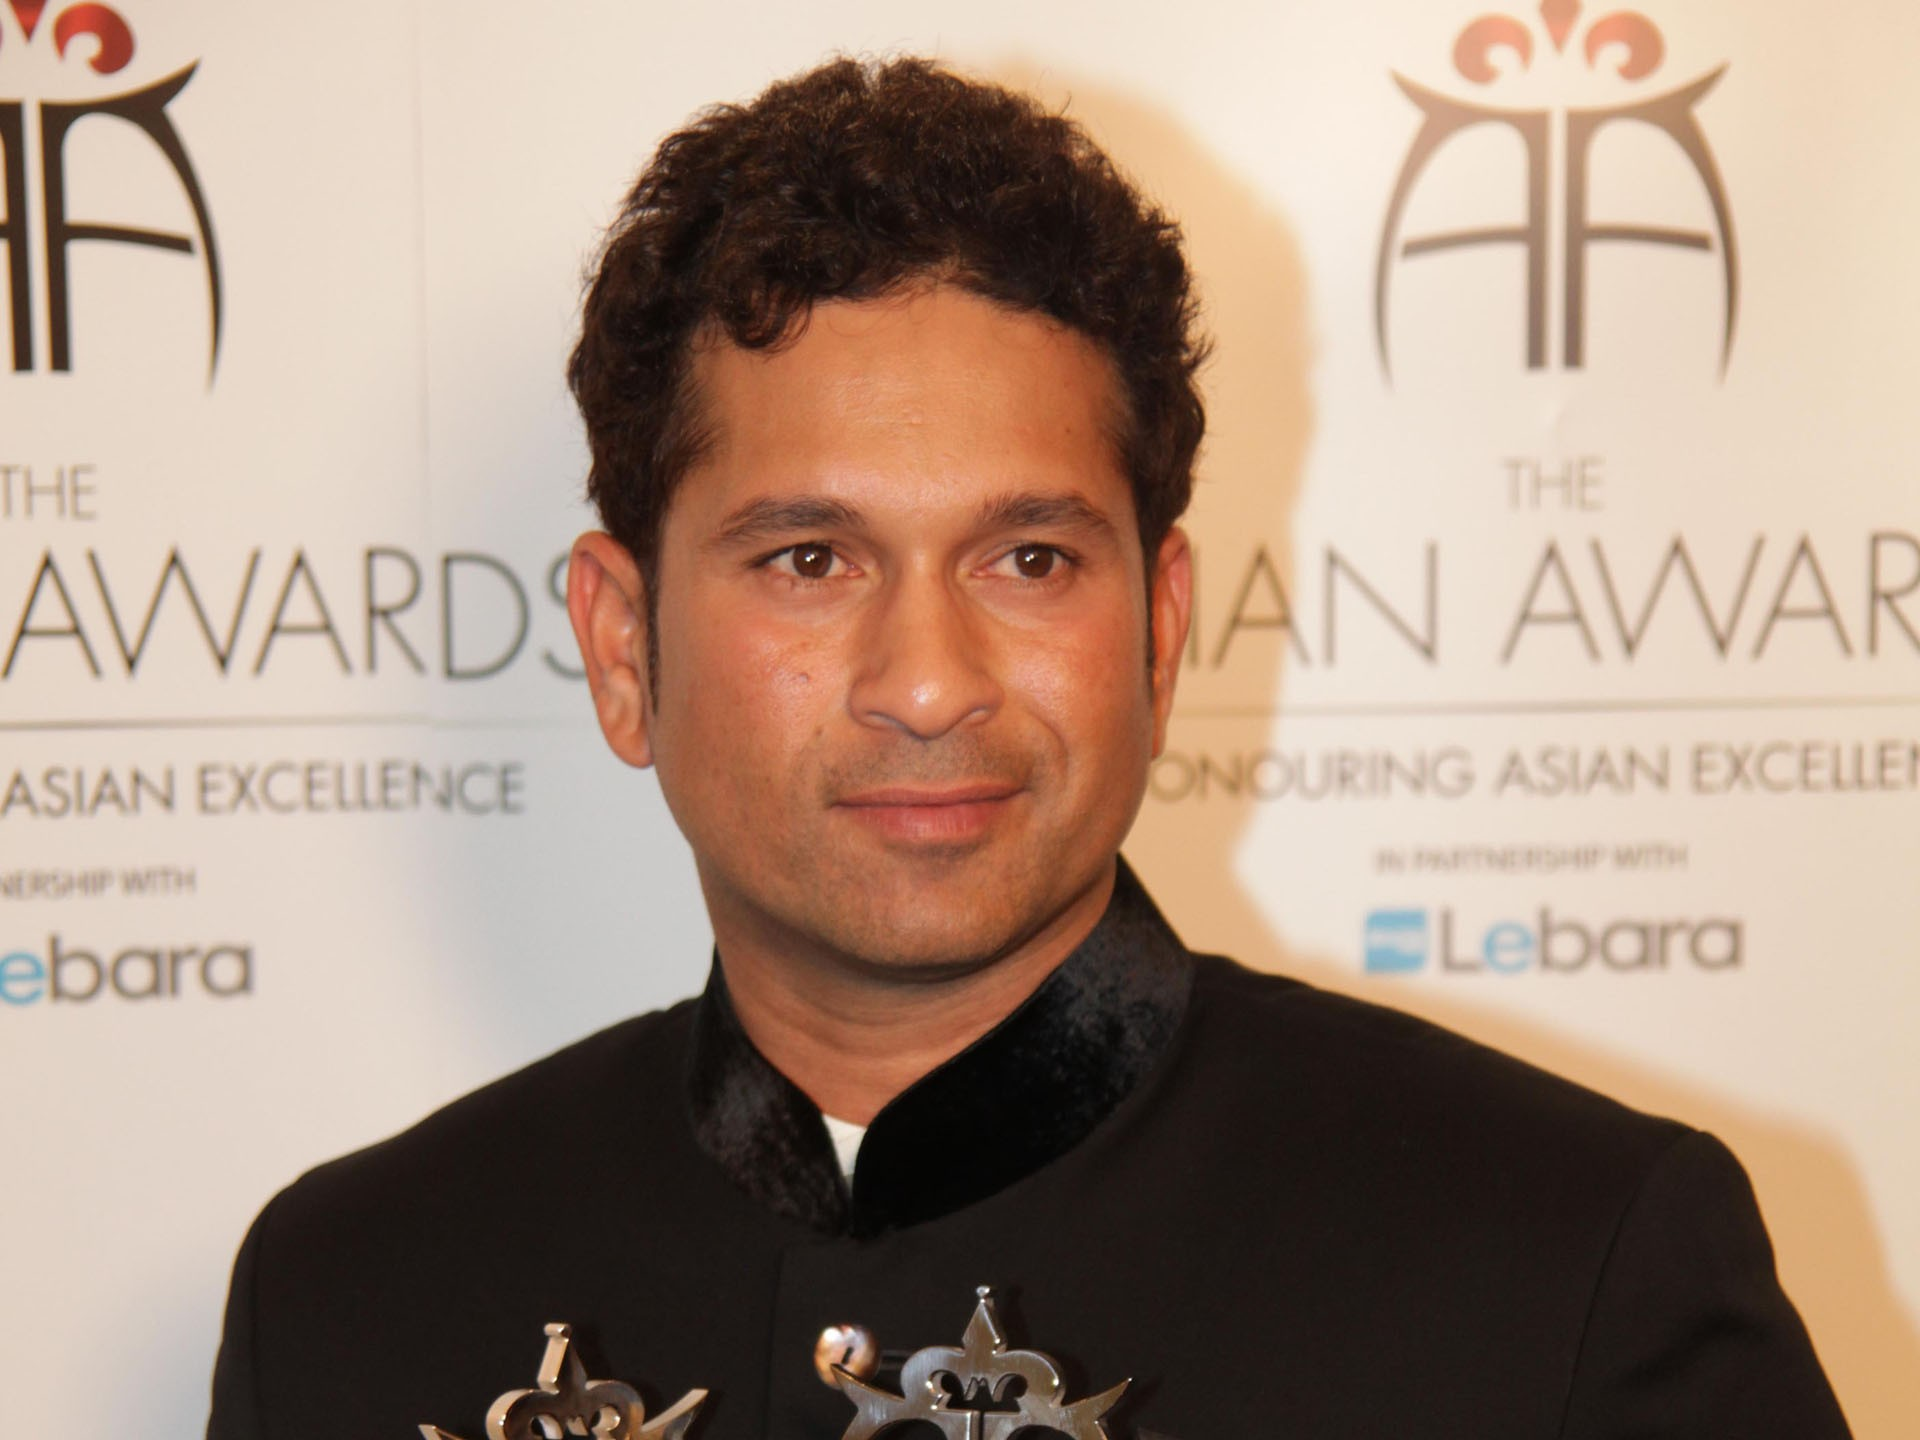 amazing master sachin tendulkar beautiful face look pose mobile desktop background hd free pictures